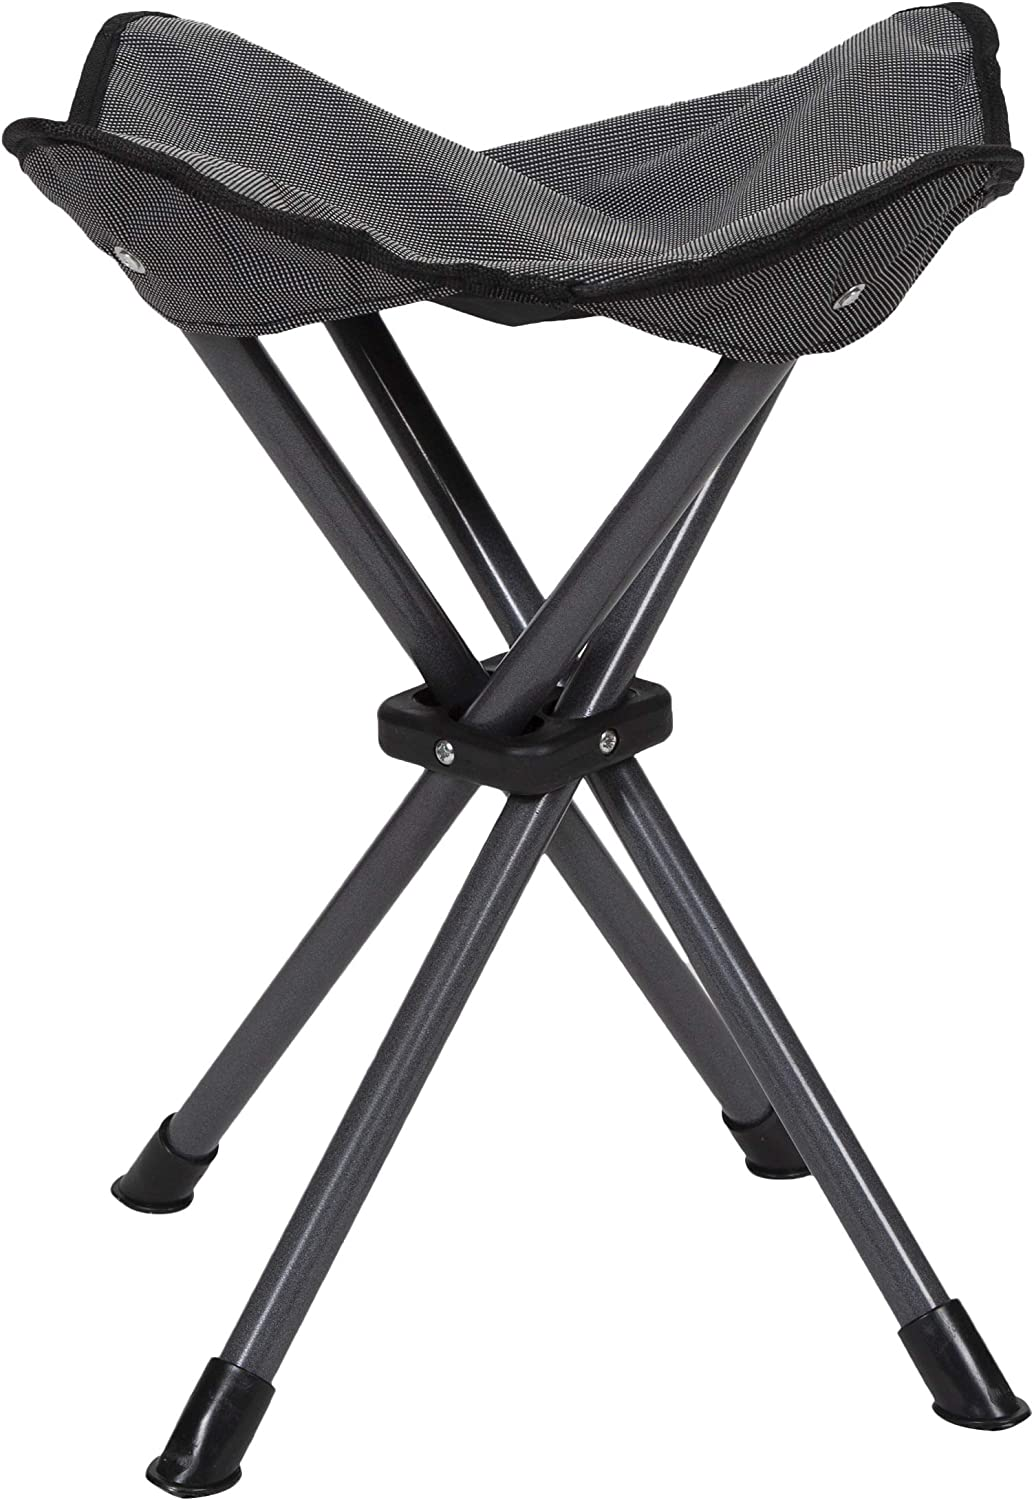 STANSPORT – Deluxe 4 Leg Camping Stool, Compact Lightweight Portable Stool for Outdoor Use